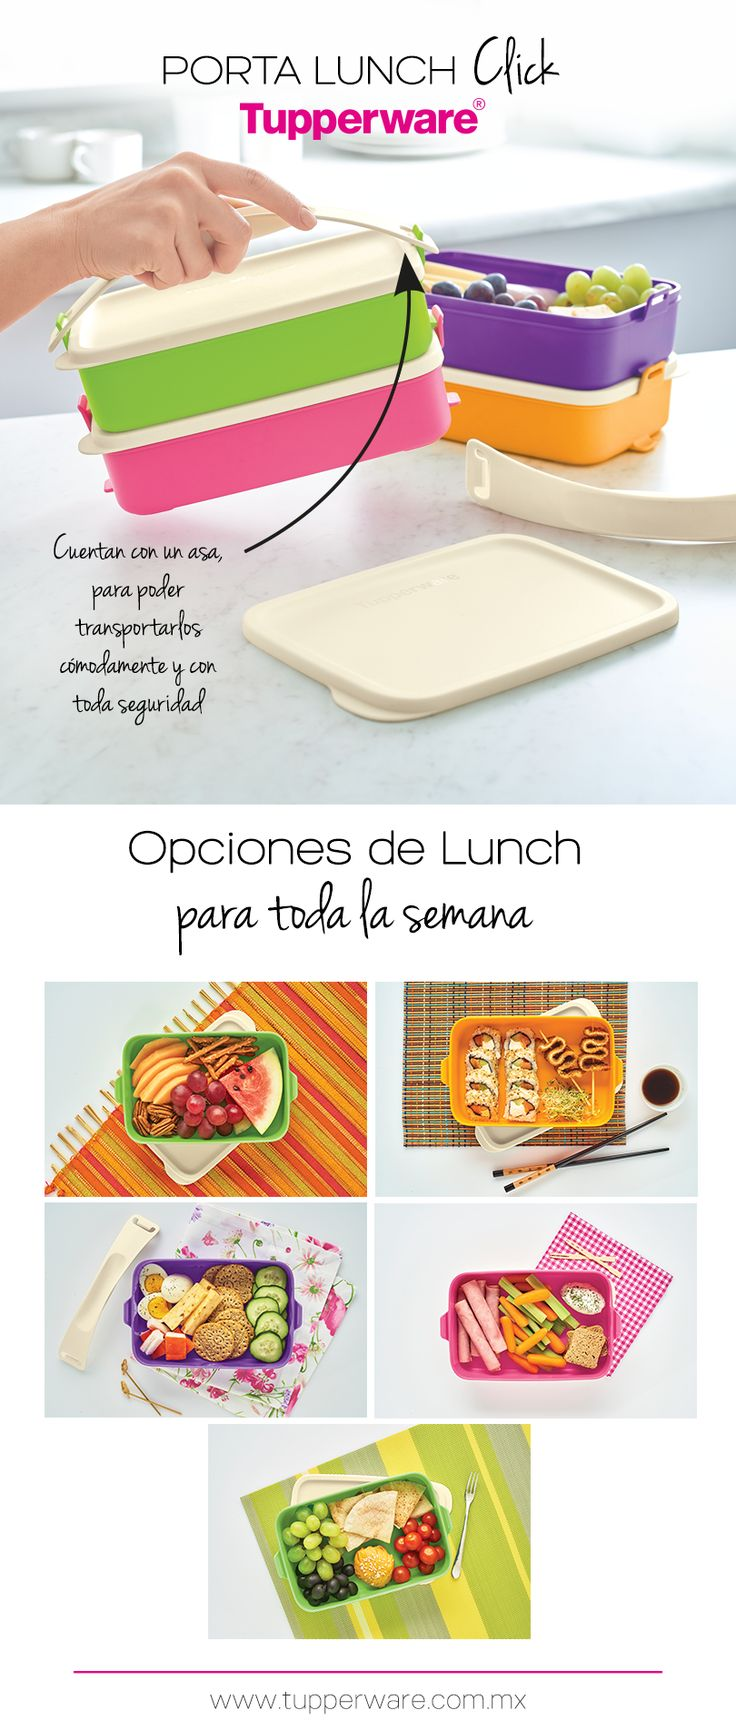 Porta Lunch Click Tupperware®